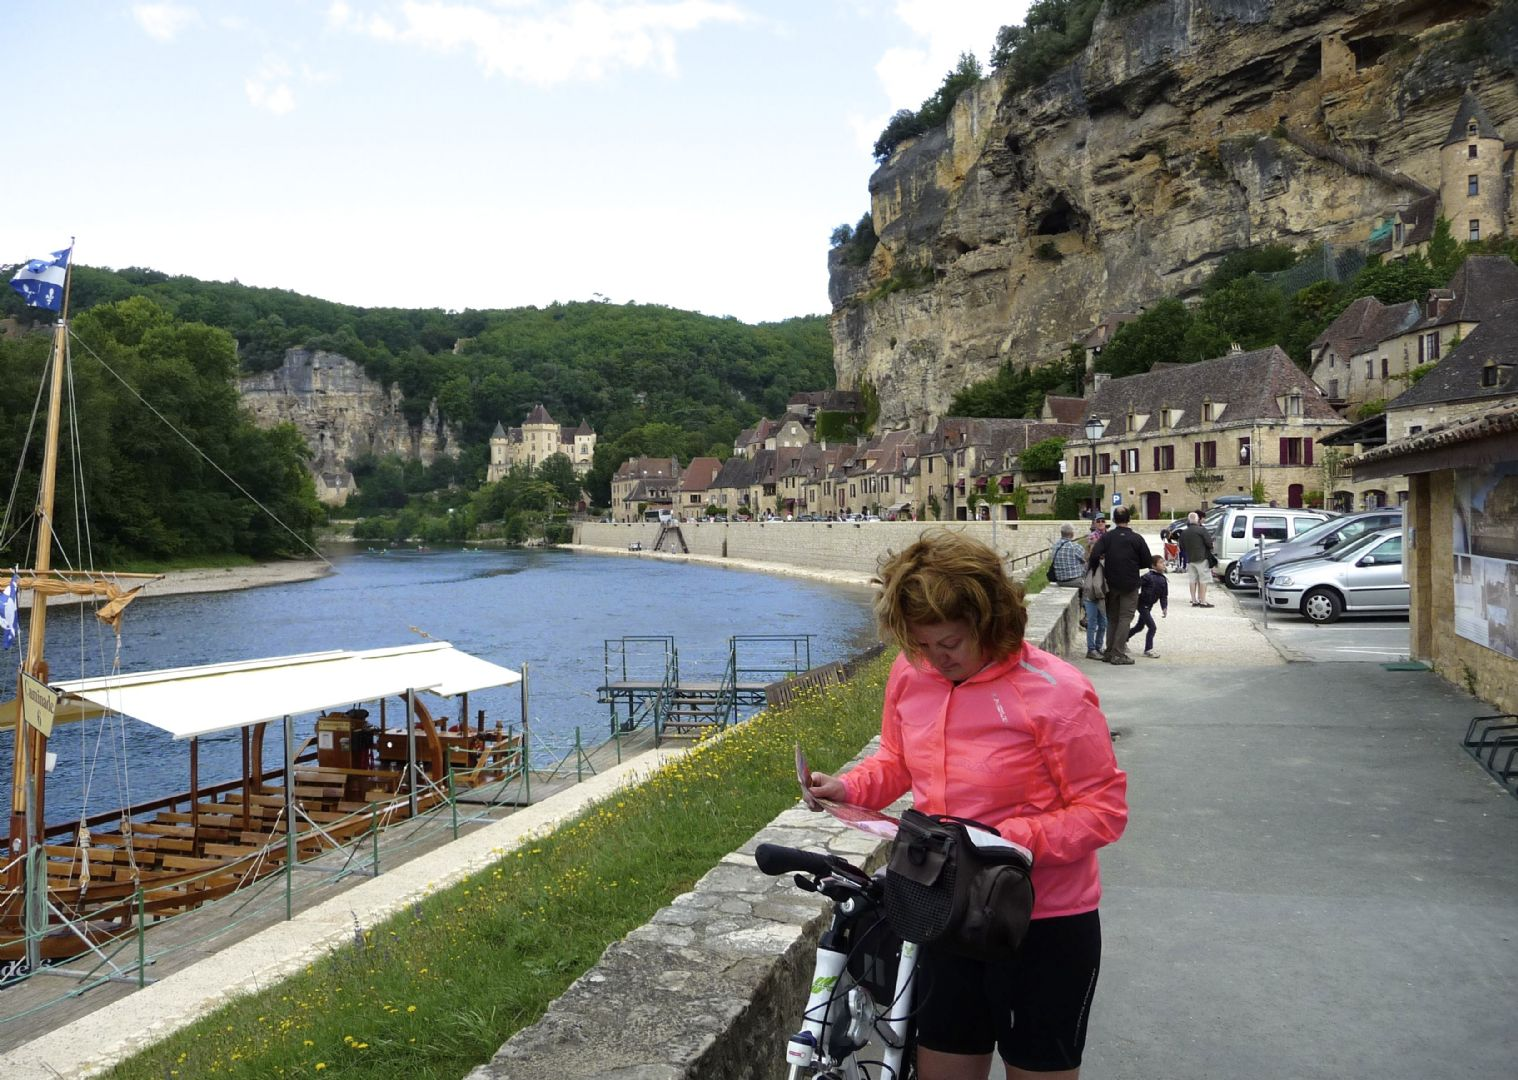 dordognecycling5.jpg - France - Dordogne - Caves and Castles - Self-Guided Leisure Cycling Holiday - Leisure Cycling